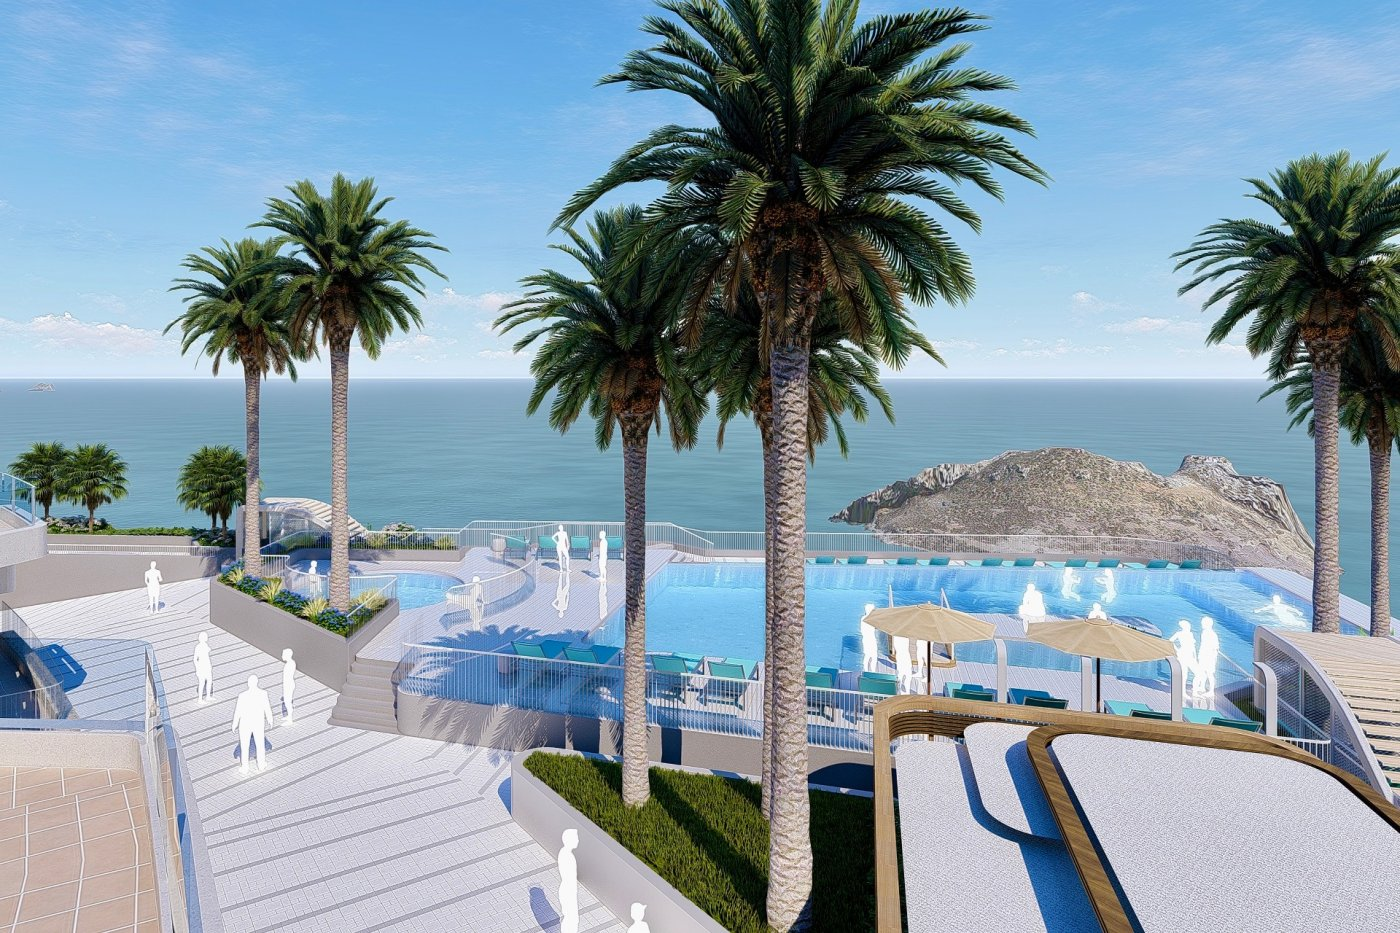 Gallery Image 13 of Luxury 1 bed penthouse with massive 59 m2 solarium and exceptional views